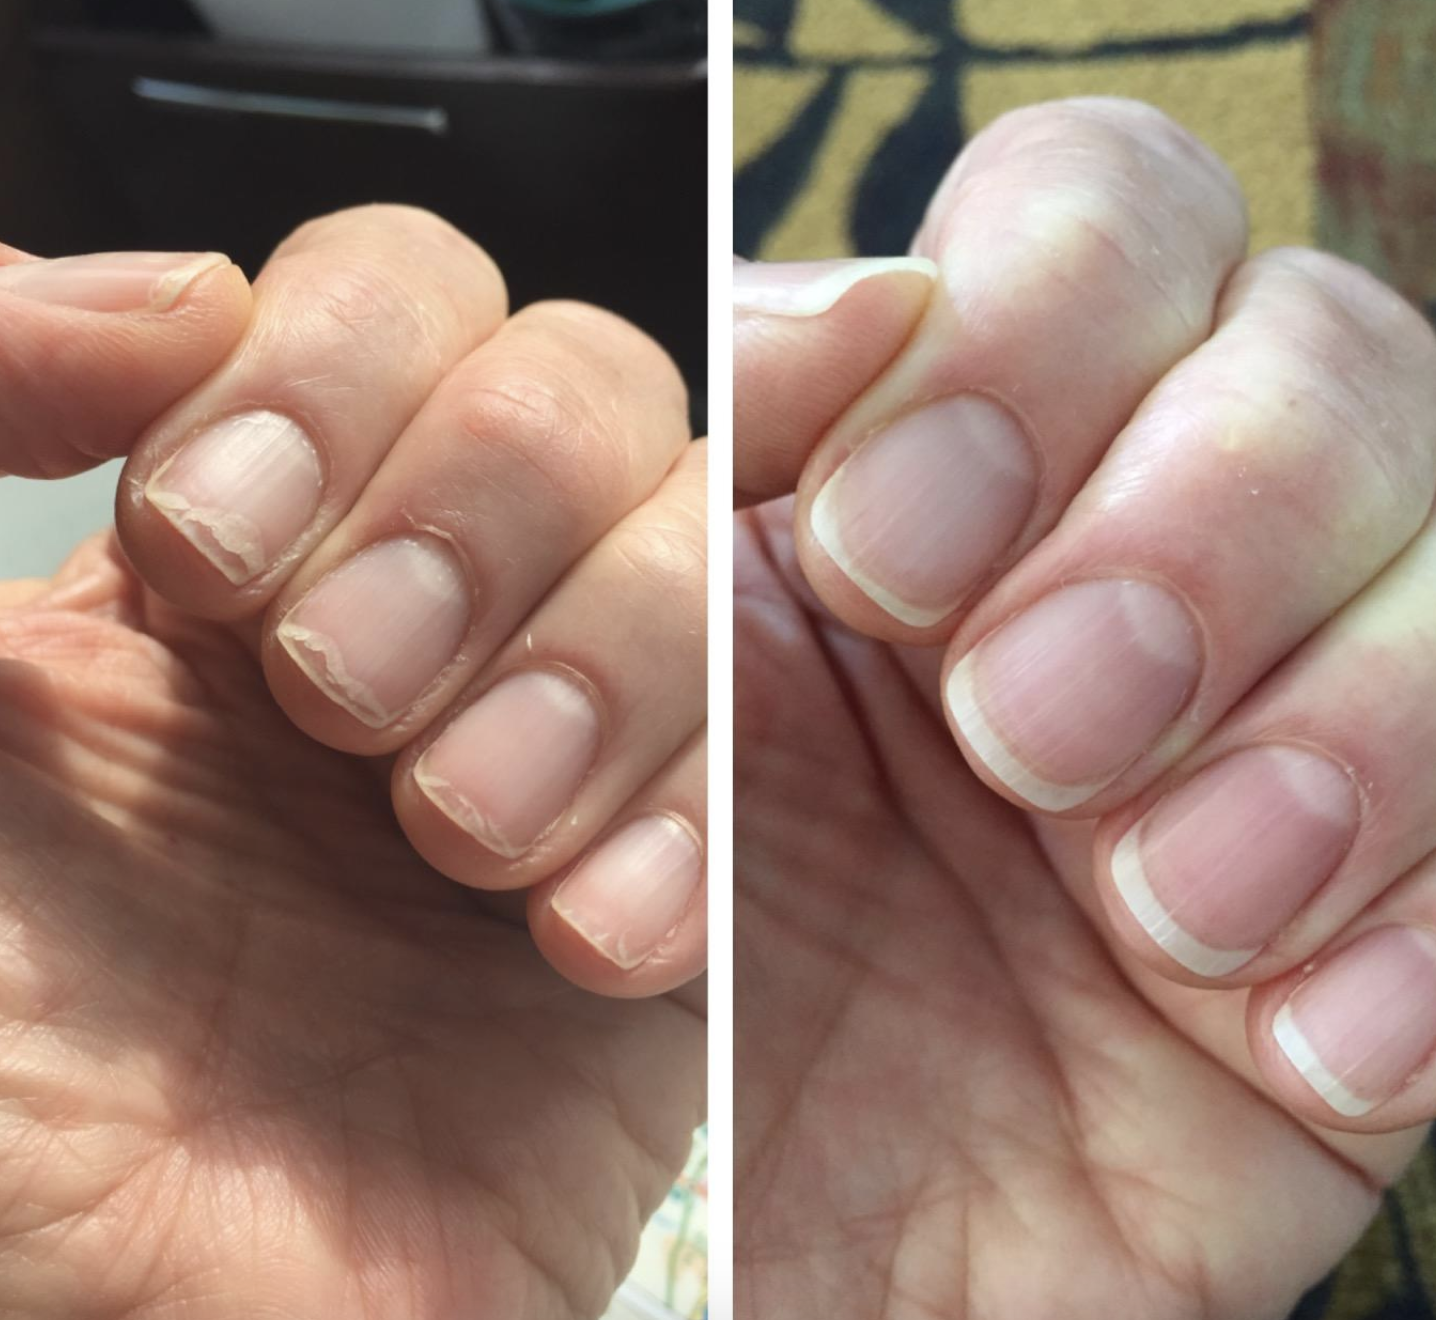 On the left, a reviewer's nails are peeled back into the nail bed and their cuticles are flaking. On the right, the reviewer's nails are healthy and grown with flat cuticles